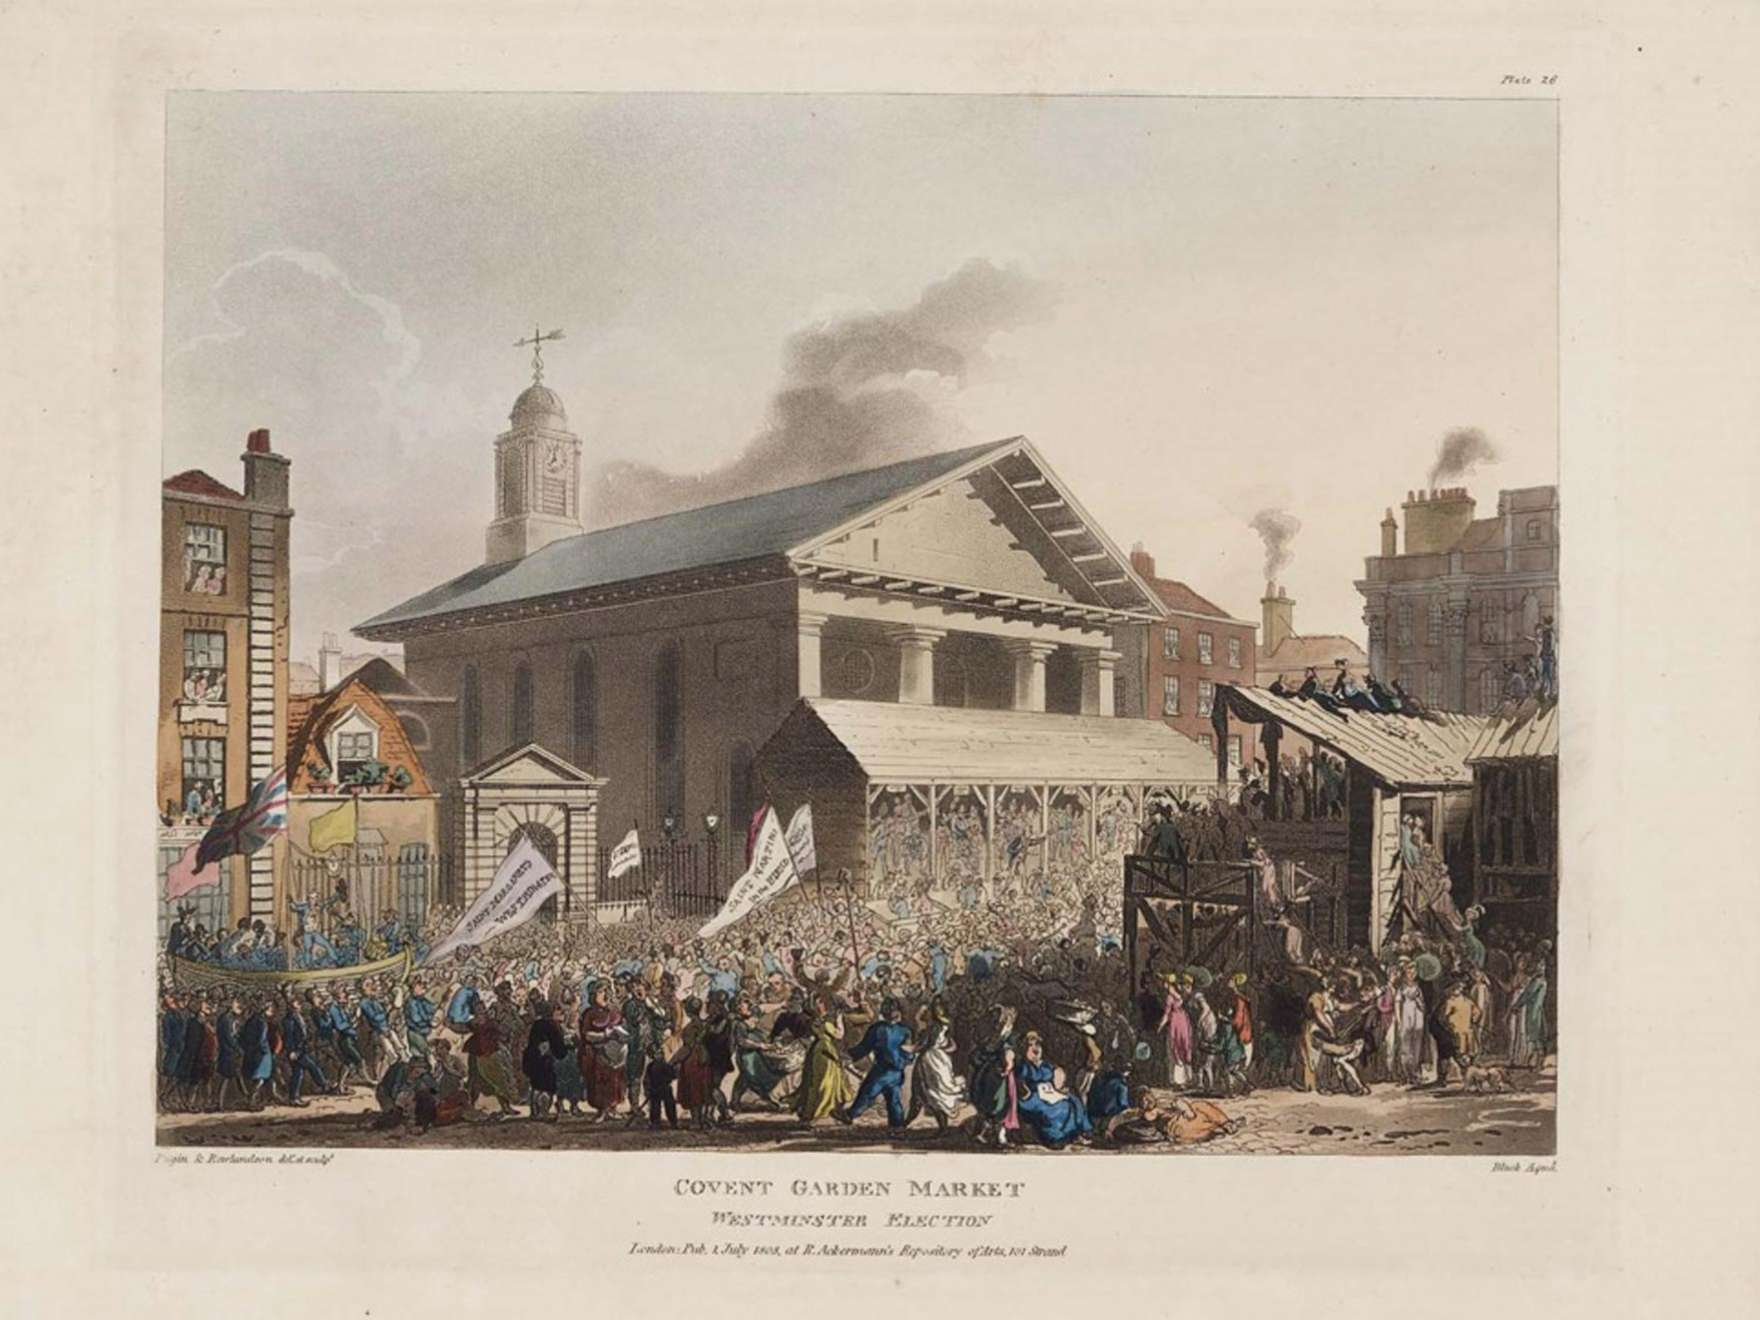 Augustus Charles Pugin (English, 1769–1832), after Thomas Rowlandson (English, 1756–1827) Covent Garden Market, Westminster Election; plate 26 from The Microcosm of London, 1808